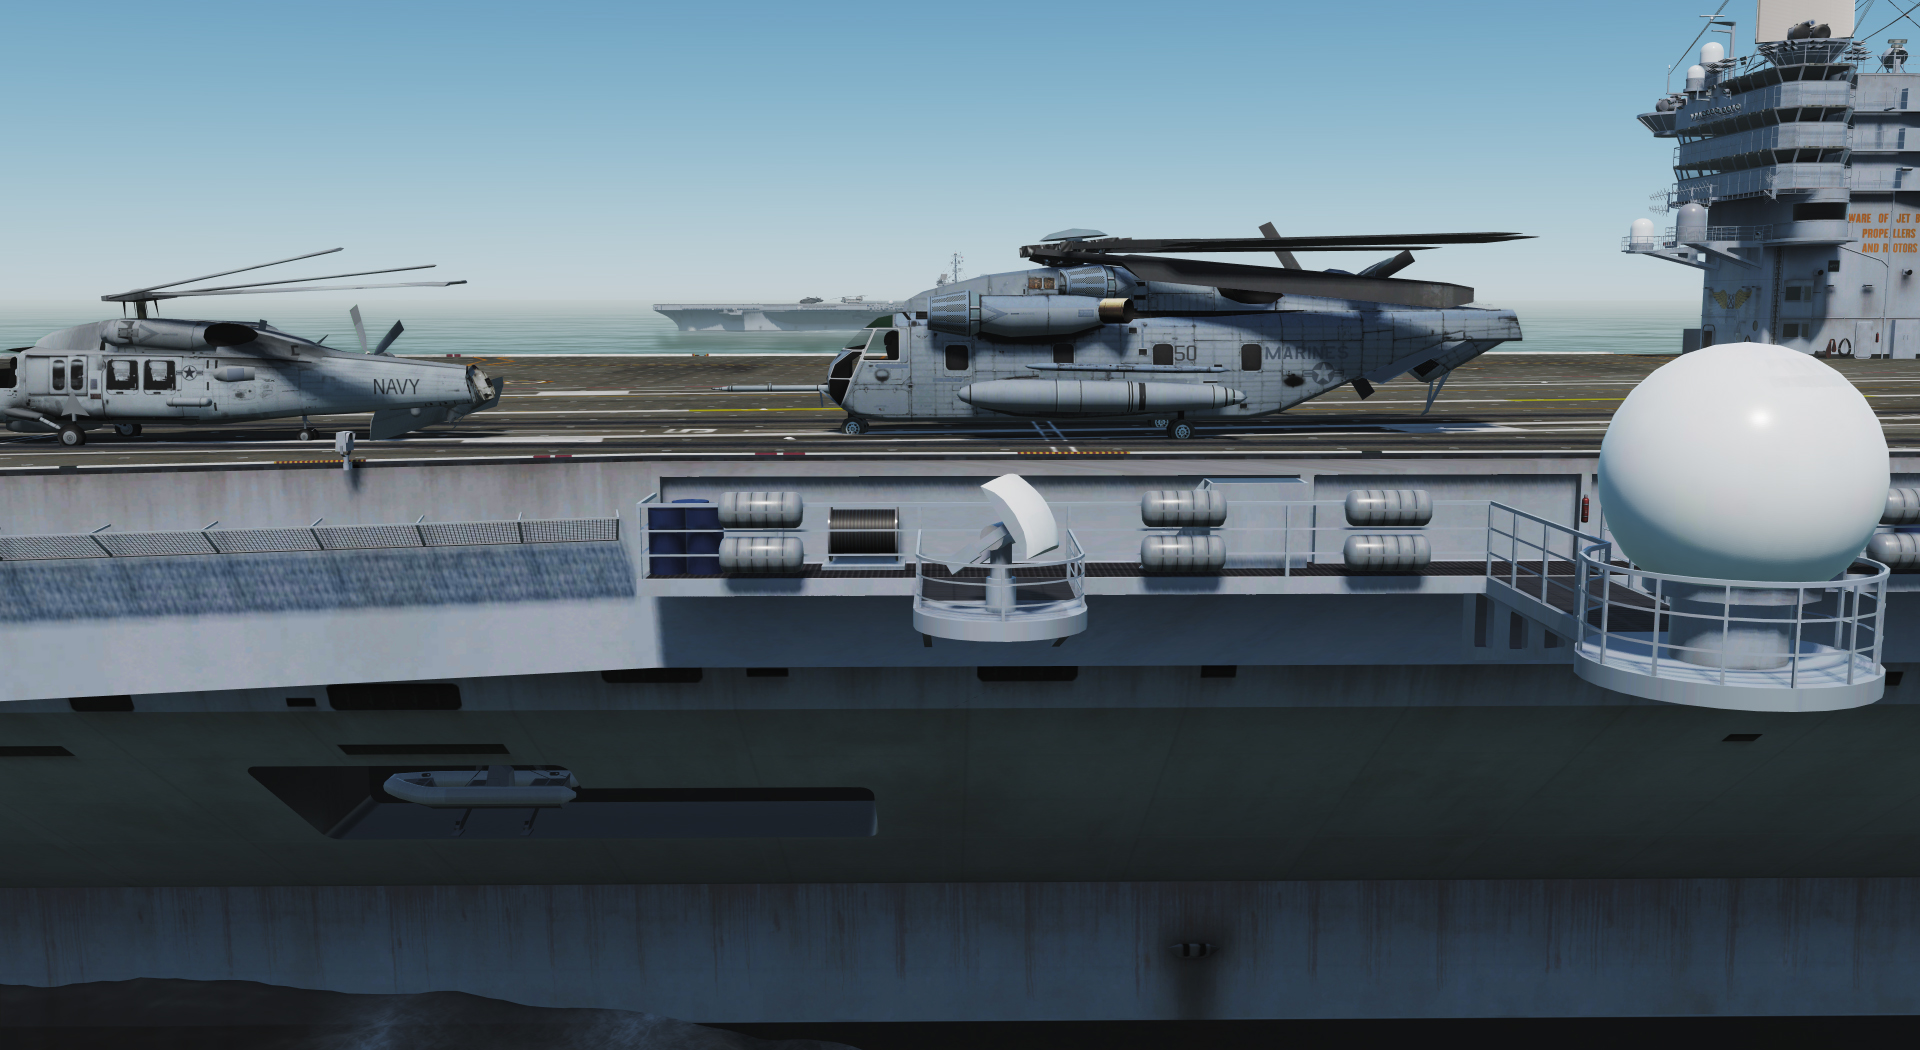 Replacement painting of the CH-53E and SH-60b